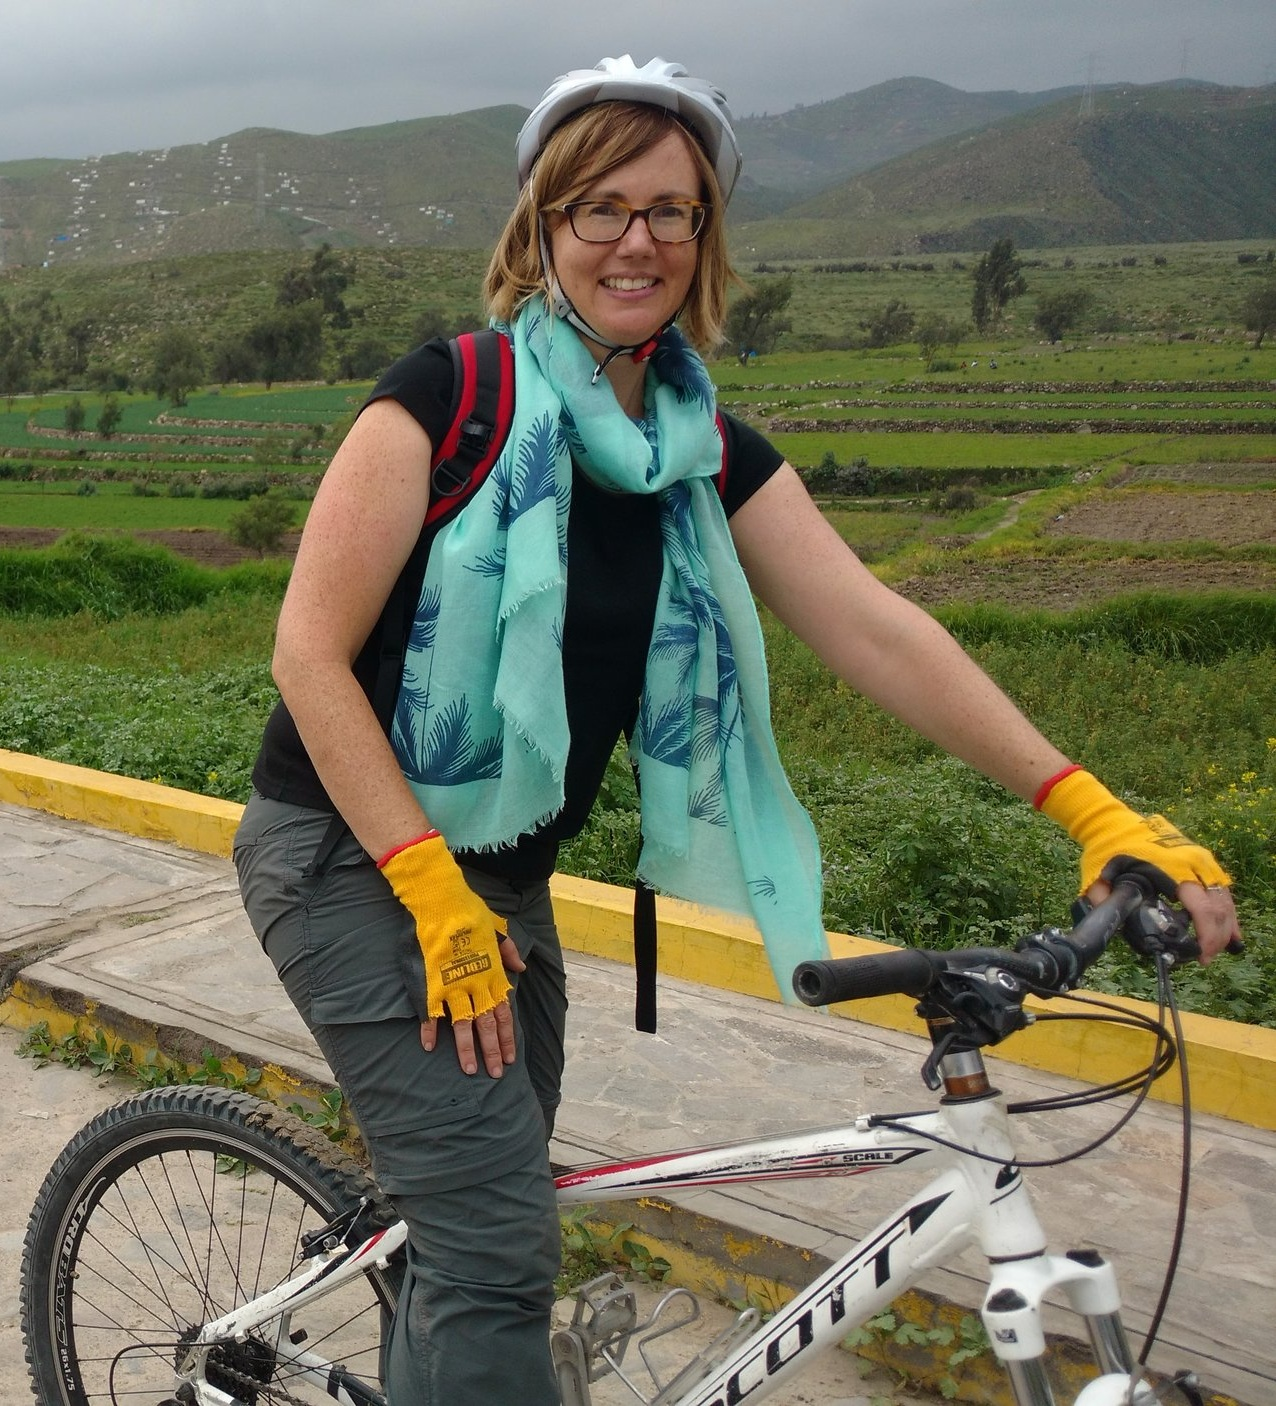 Sarah's partnering with Mulga Bicycle Tours so that others may join the ride. -